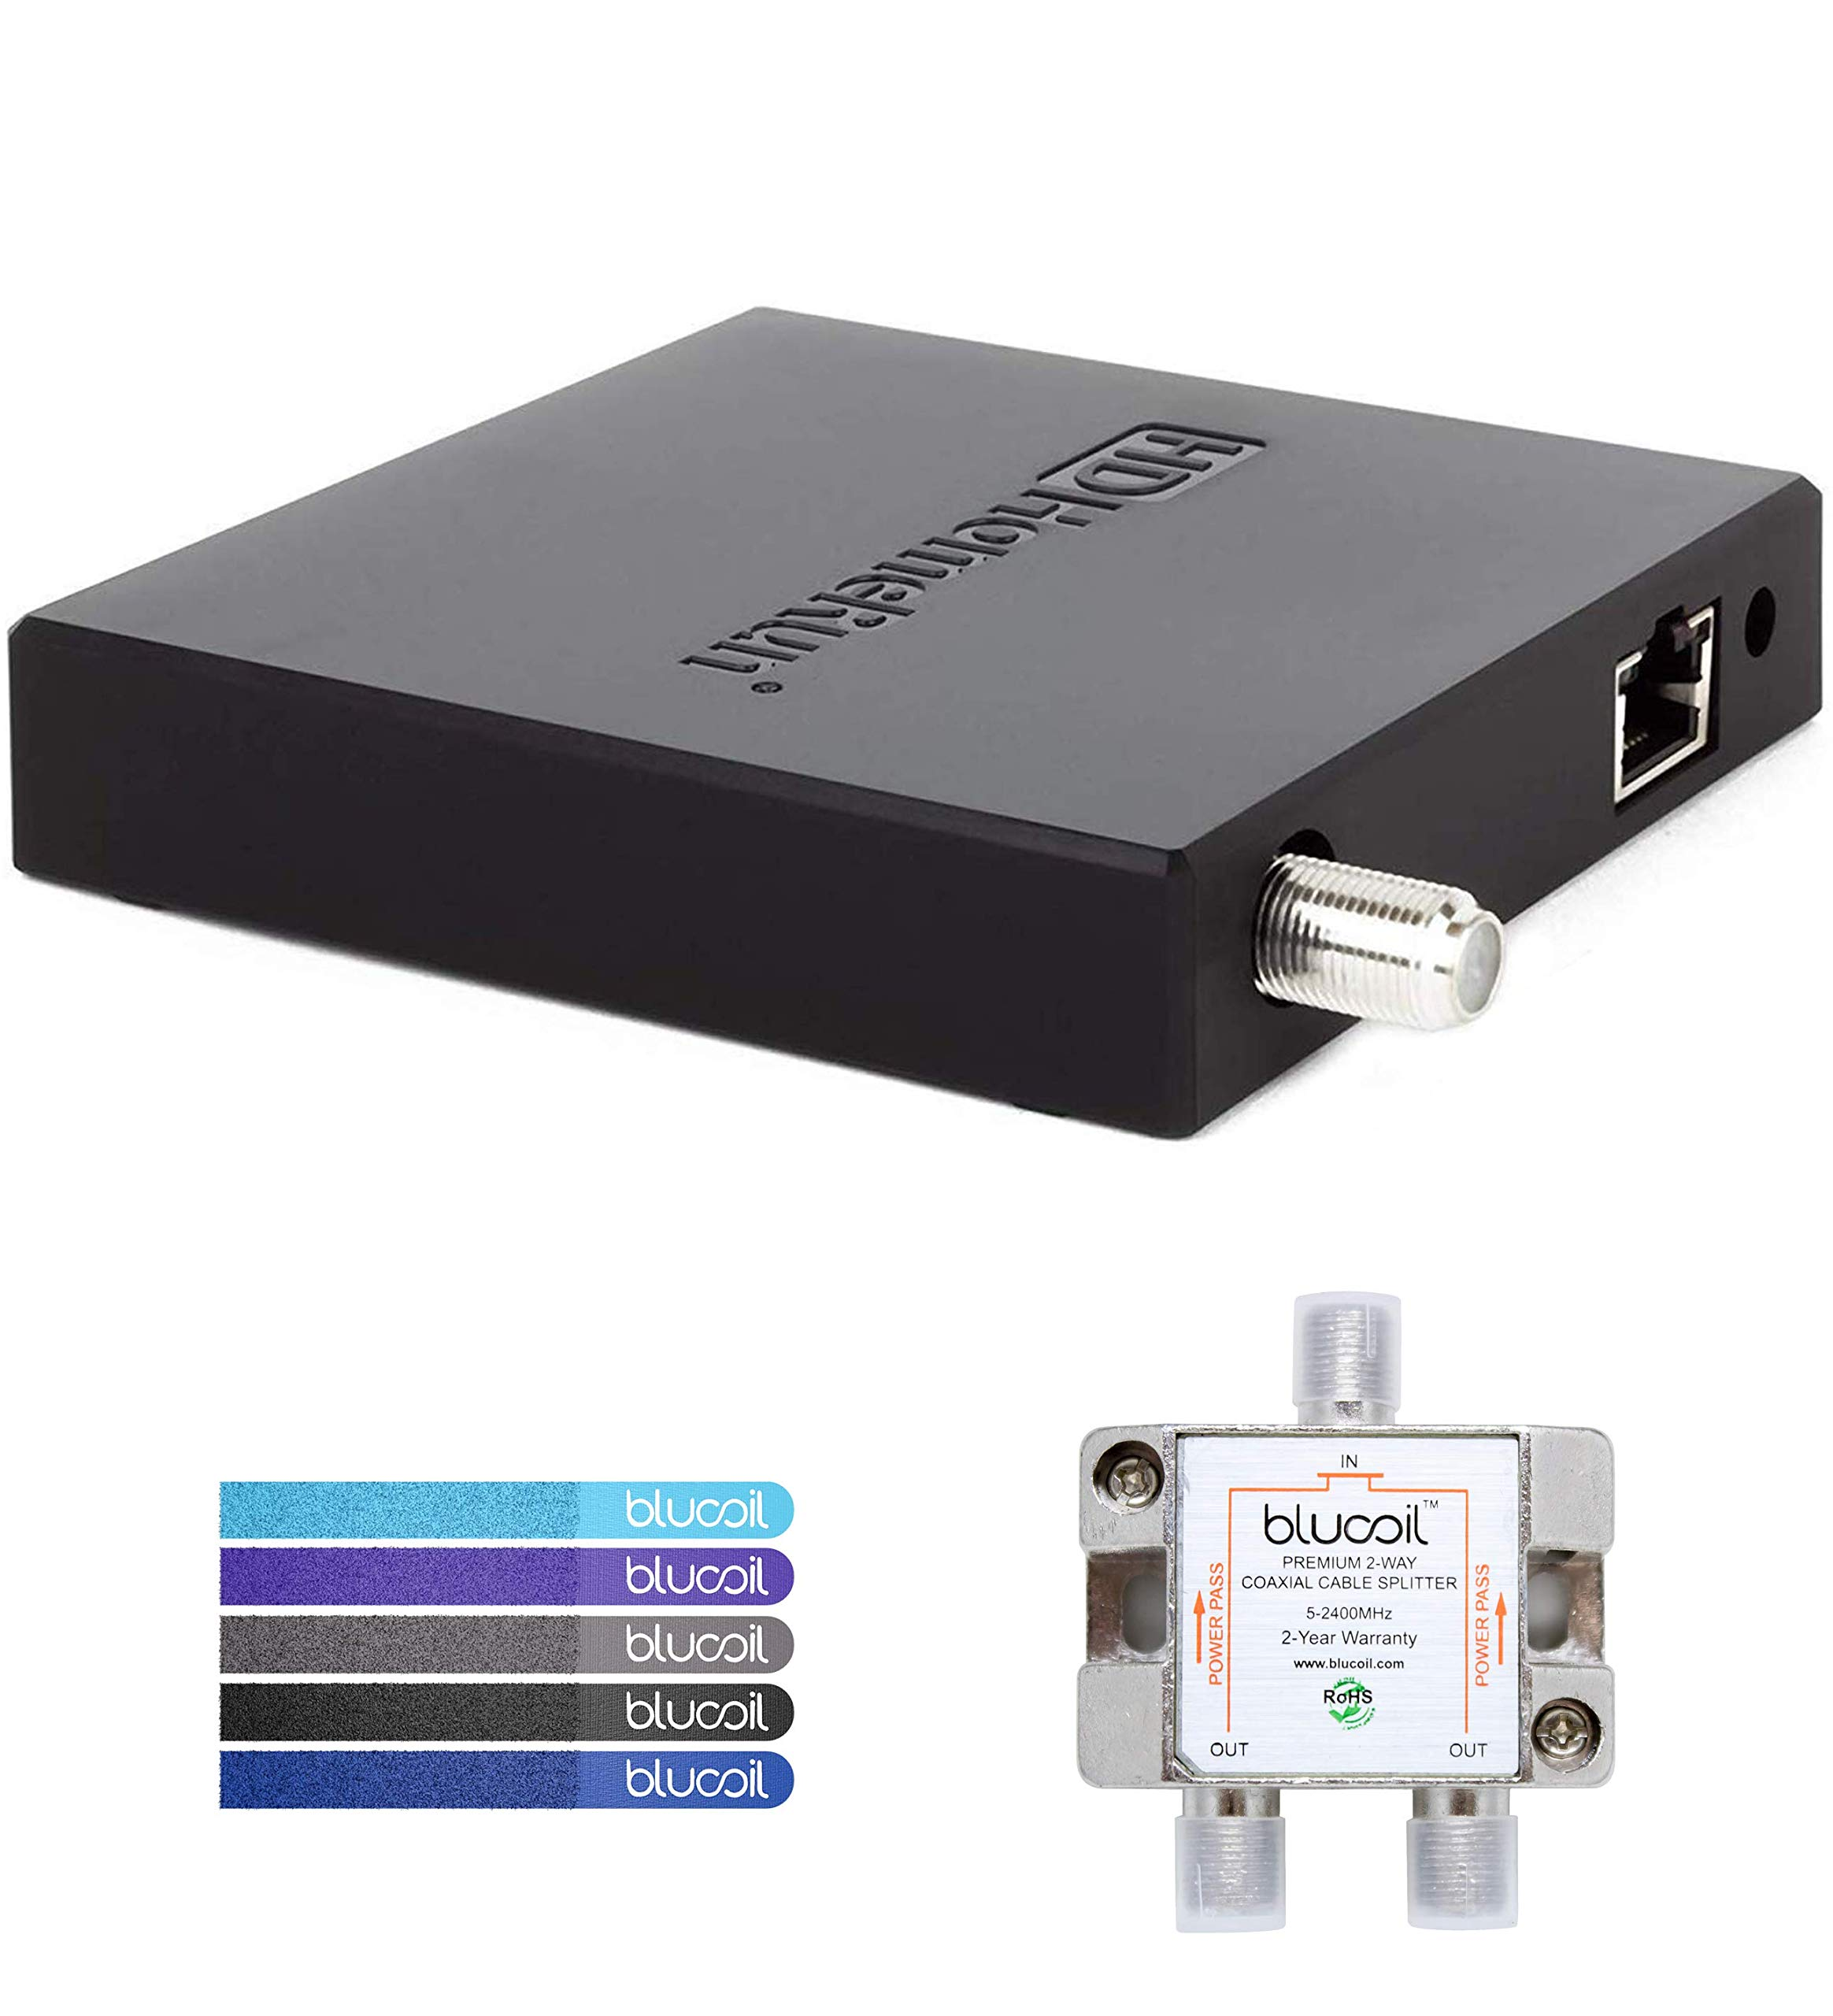 SiliconDust HDHomeRun Connect Duo HDHR5-2US Tuner (Renewed) Bundle with Blucoil 2-Way TV Coaxial Cable Splitter and 5-Pack of Reusable Cable Ties by blucoil (Image #1)